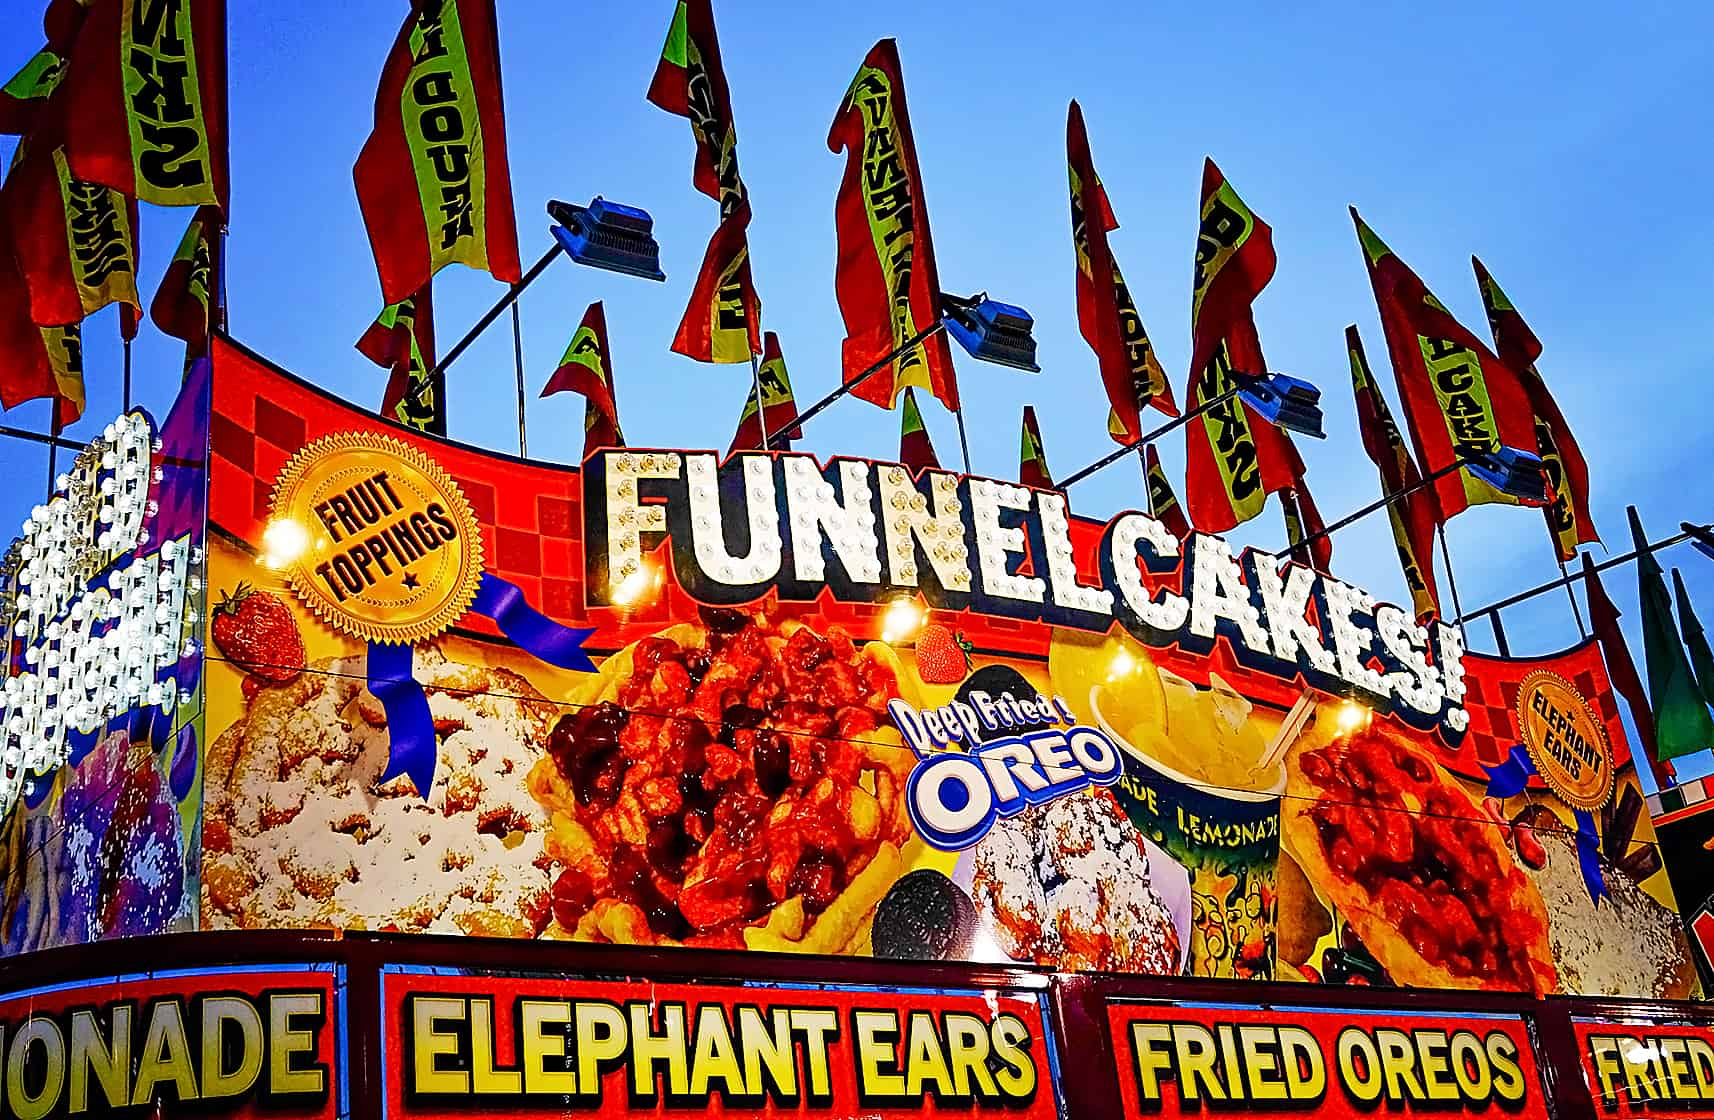 Funnel cakes make a frequent appearance at Alabama festivals